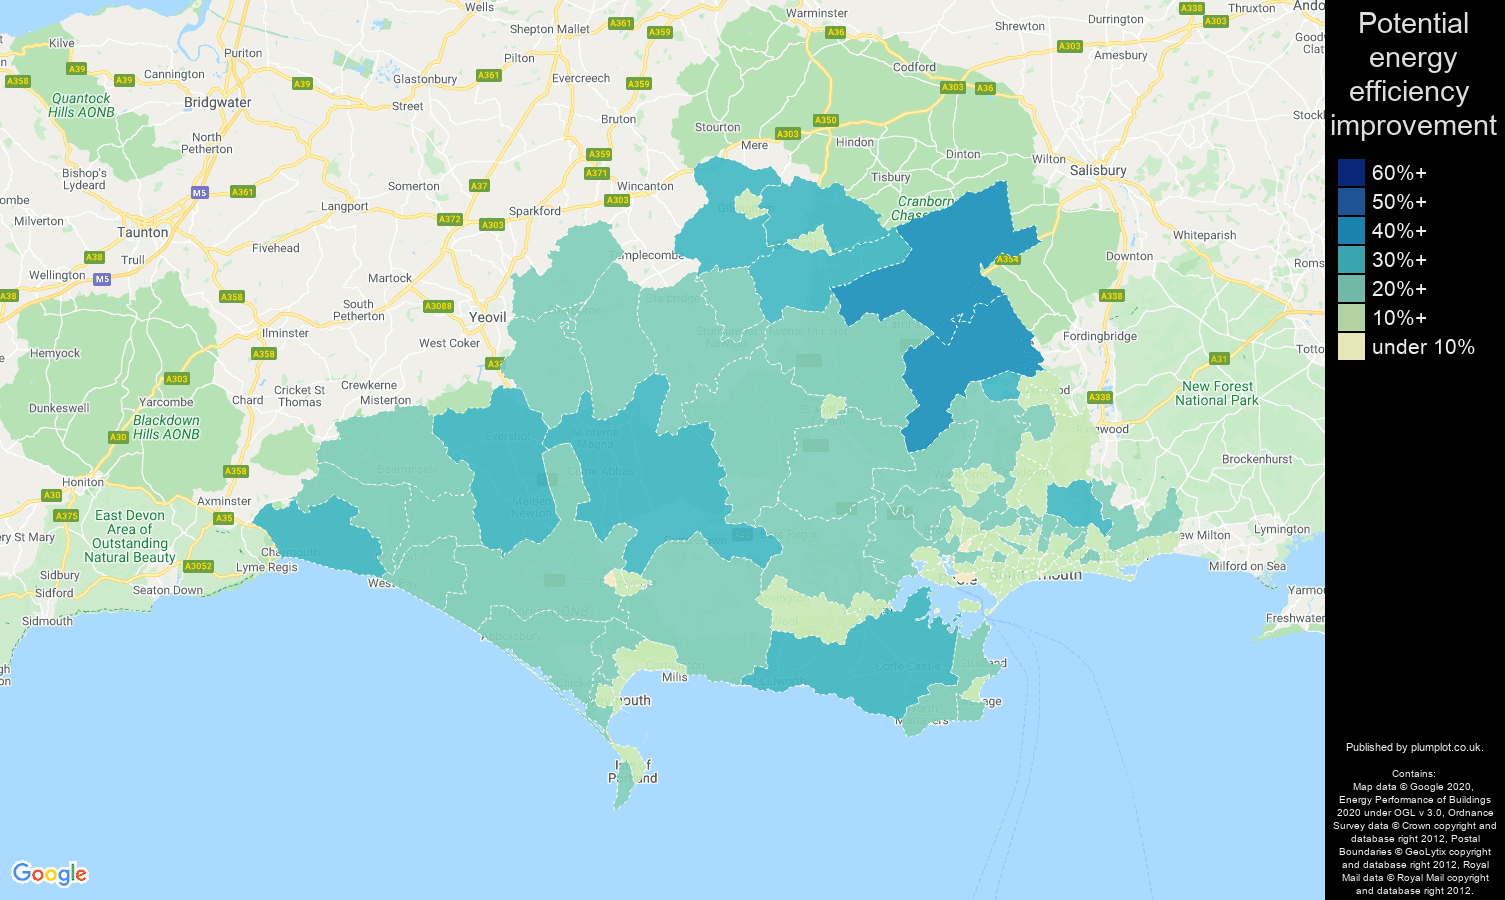 Dorset map of potential energy efficiency improvement of properties